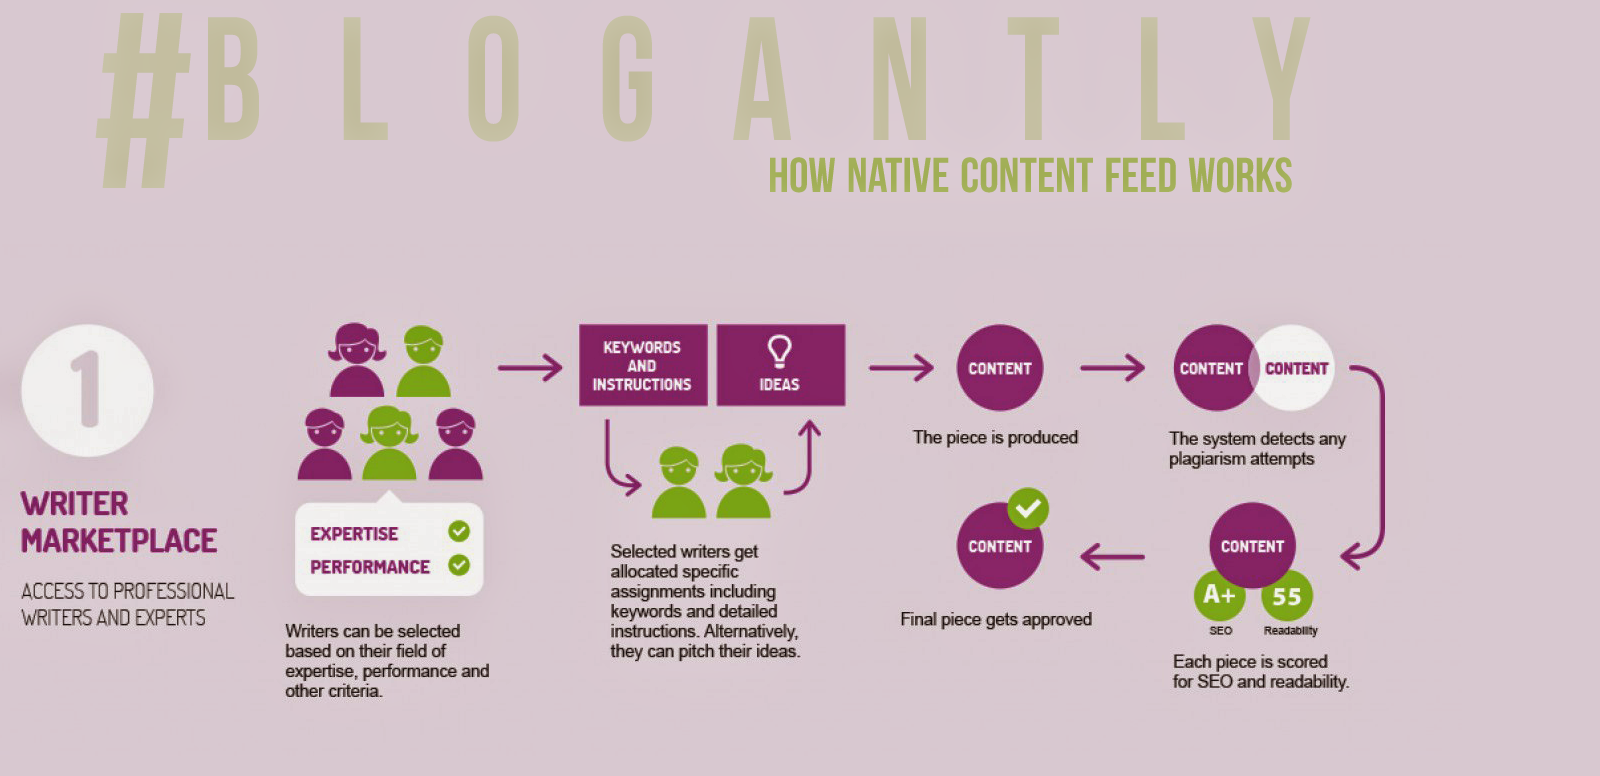 @blogantly via #blogantly // How native content feed works Part 1 // http://goo.gl/MochNd on #NativeAdvertising